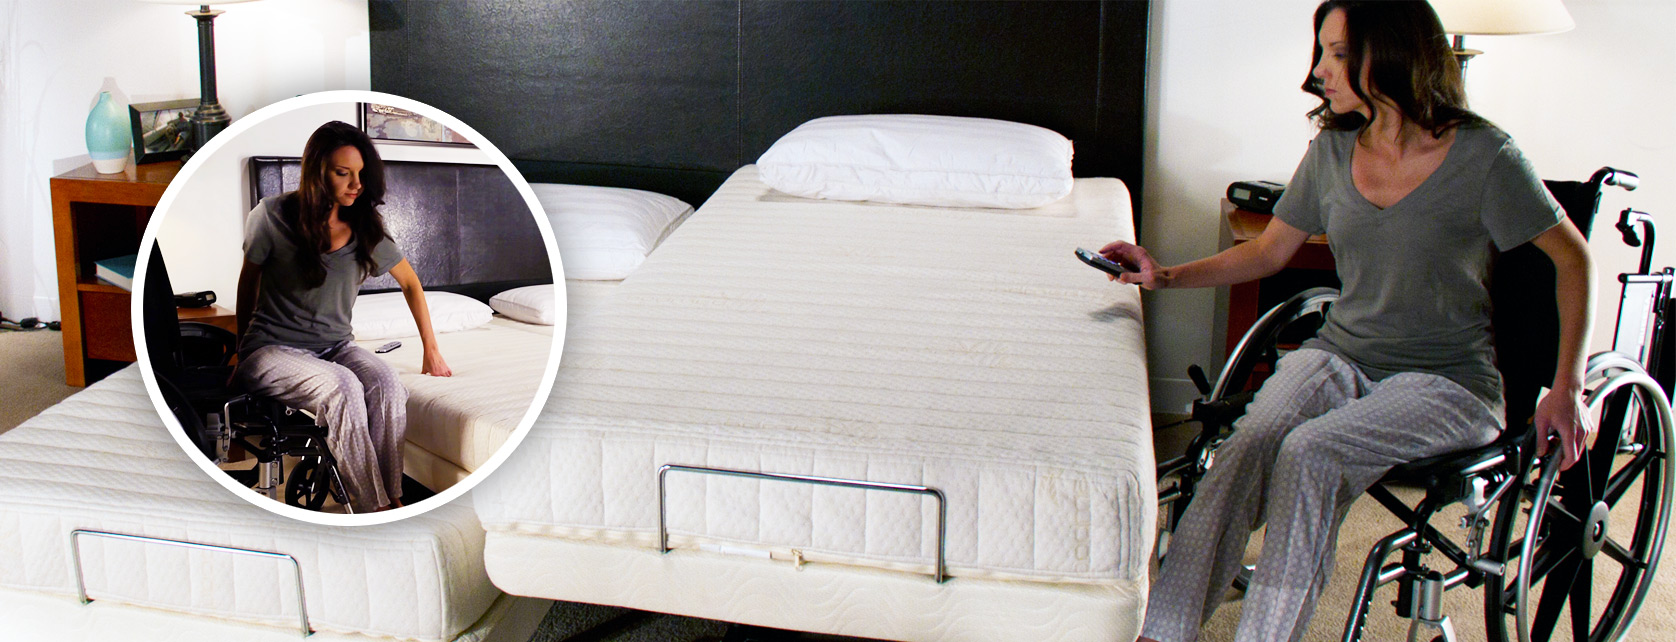 Transfer Master beds are desigend to allow for easy transfer from wheelchair to bed.